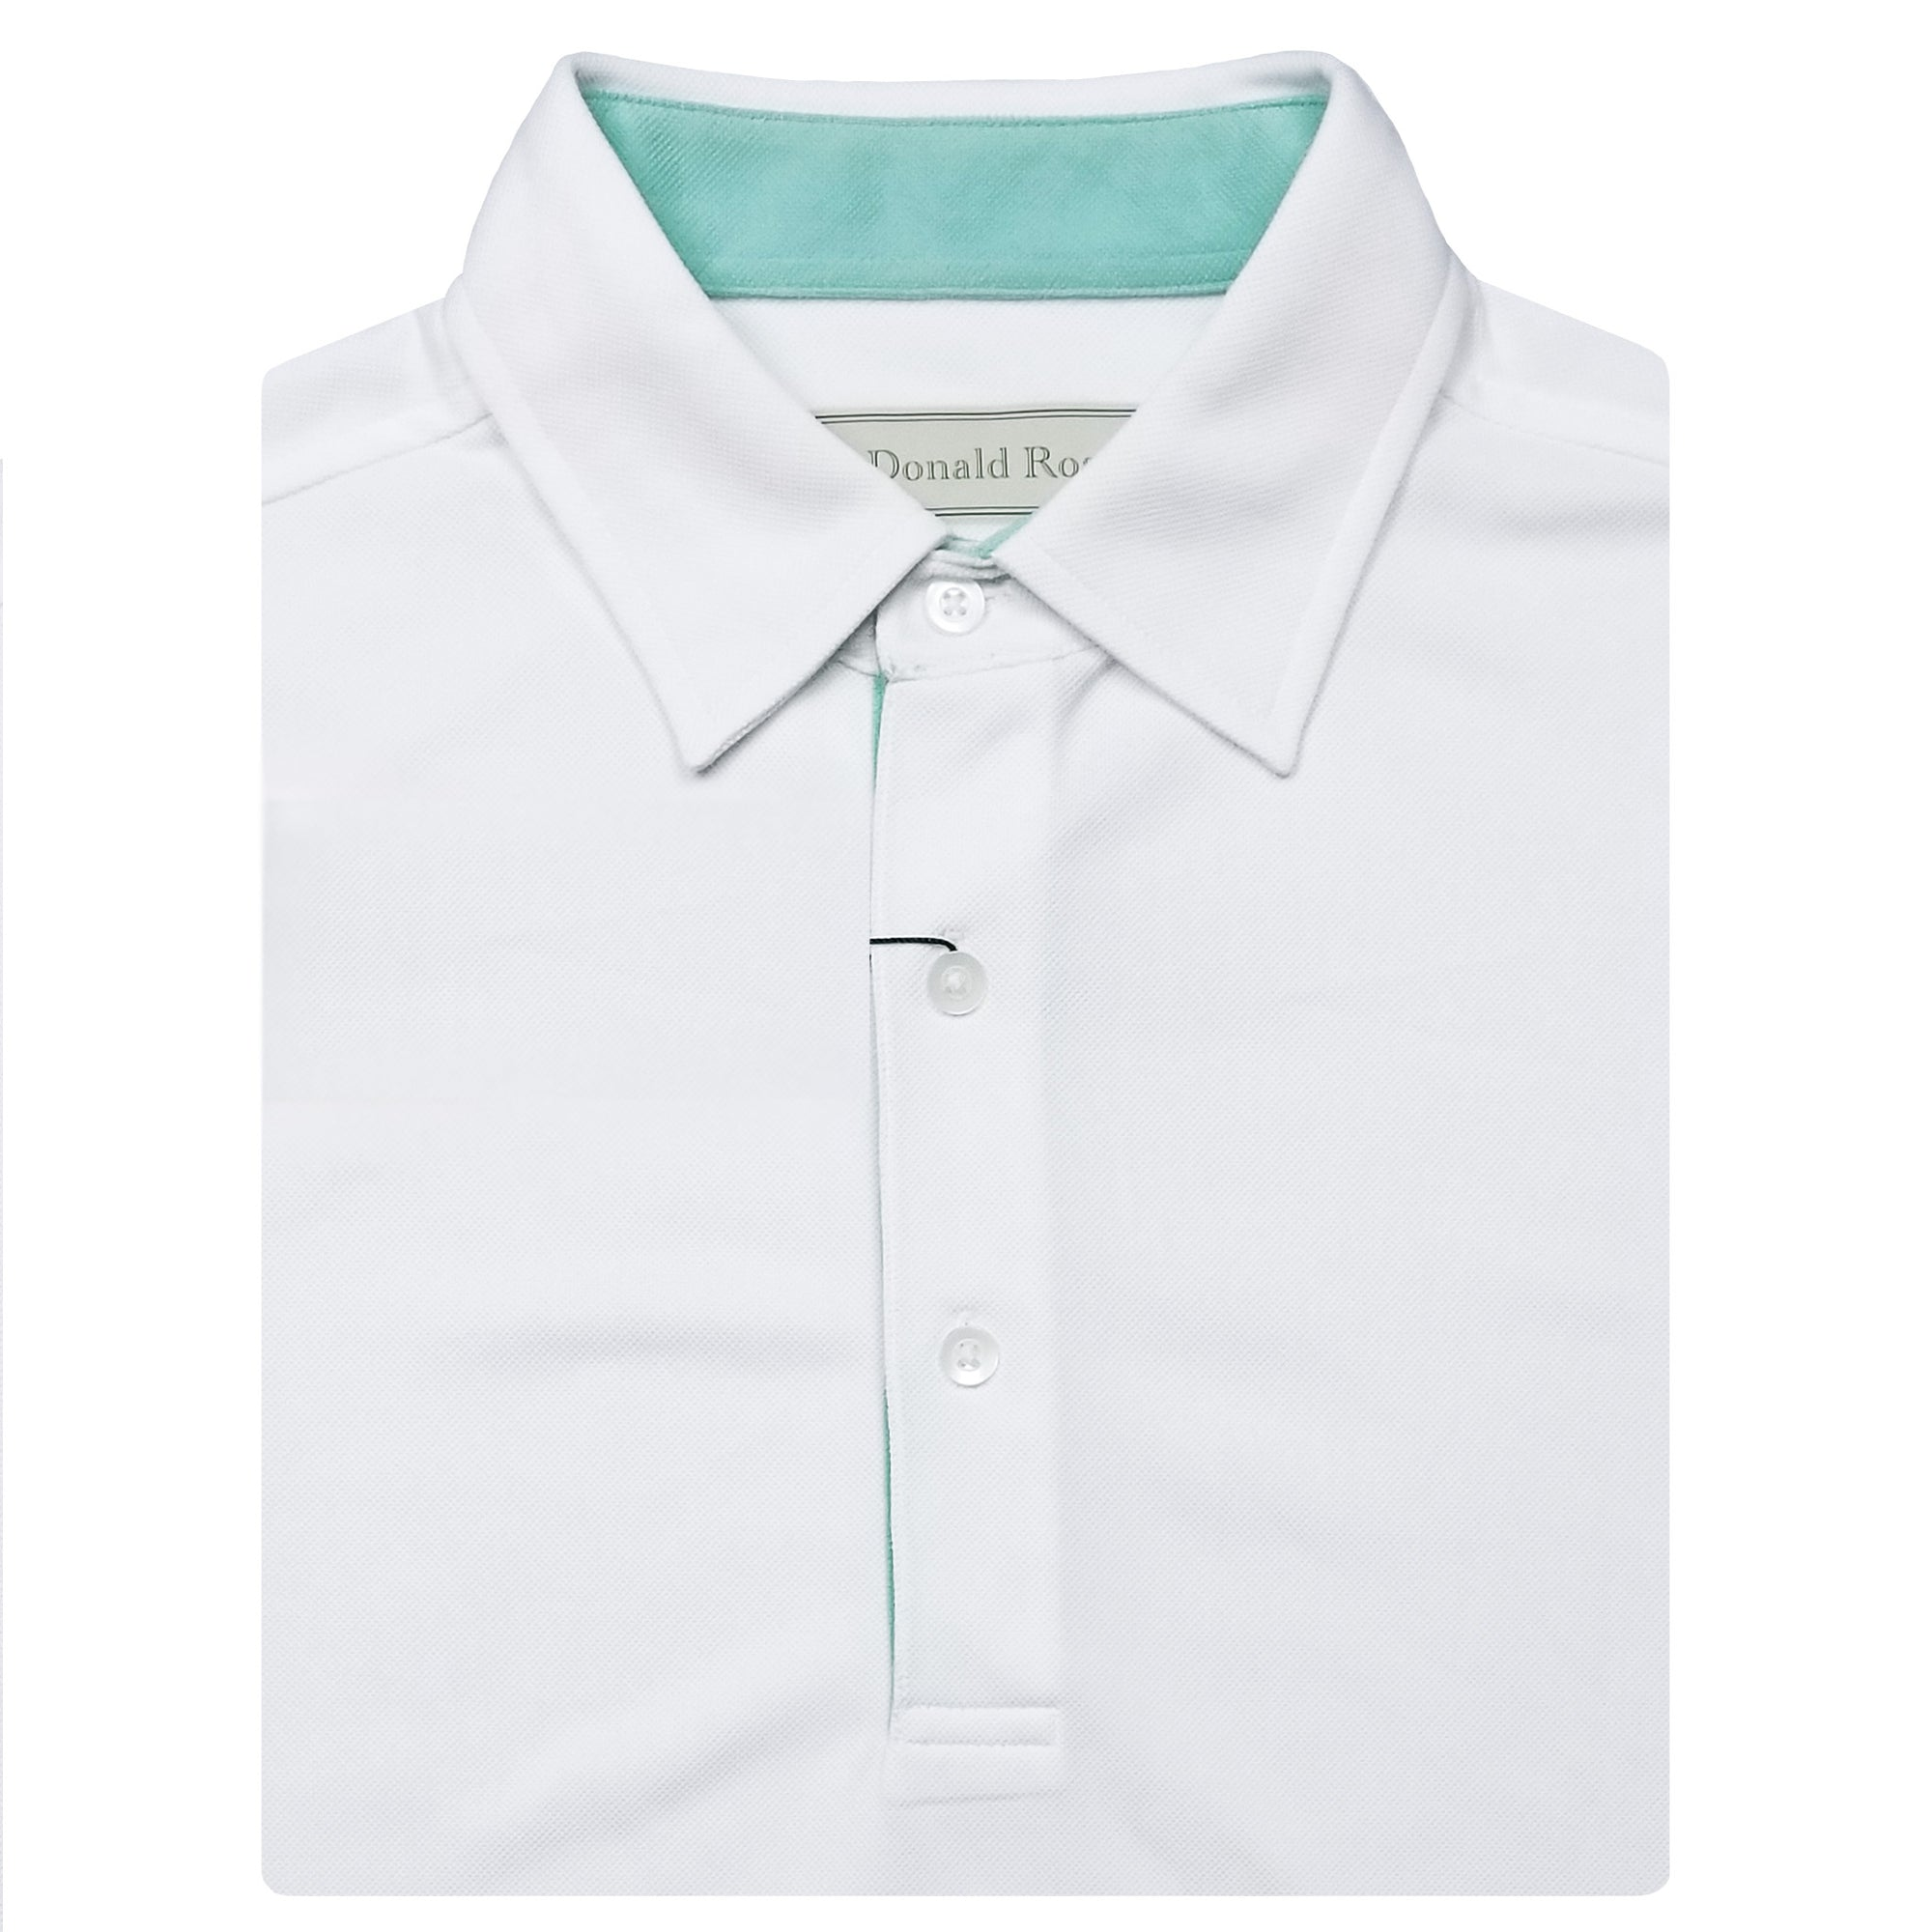 fba7afdf Mens Short Sleeve Classic Lacoste Style Solid PIQUE SELF COLLAR - WHIT -  Golf Anything US